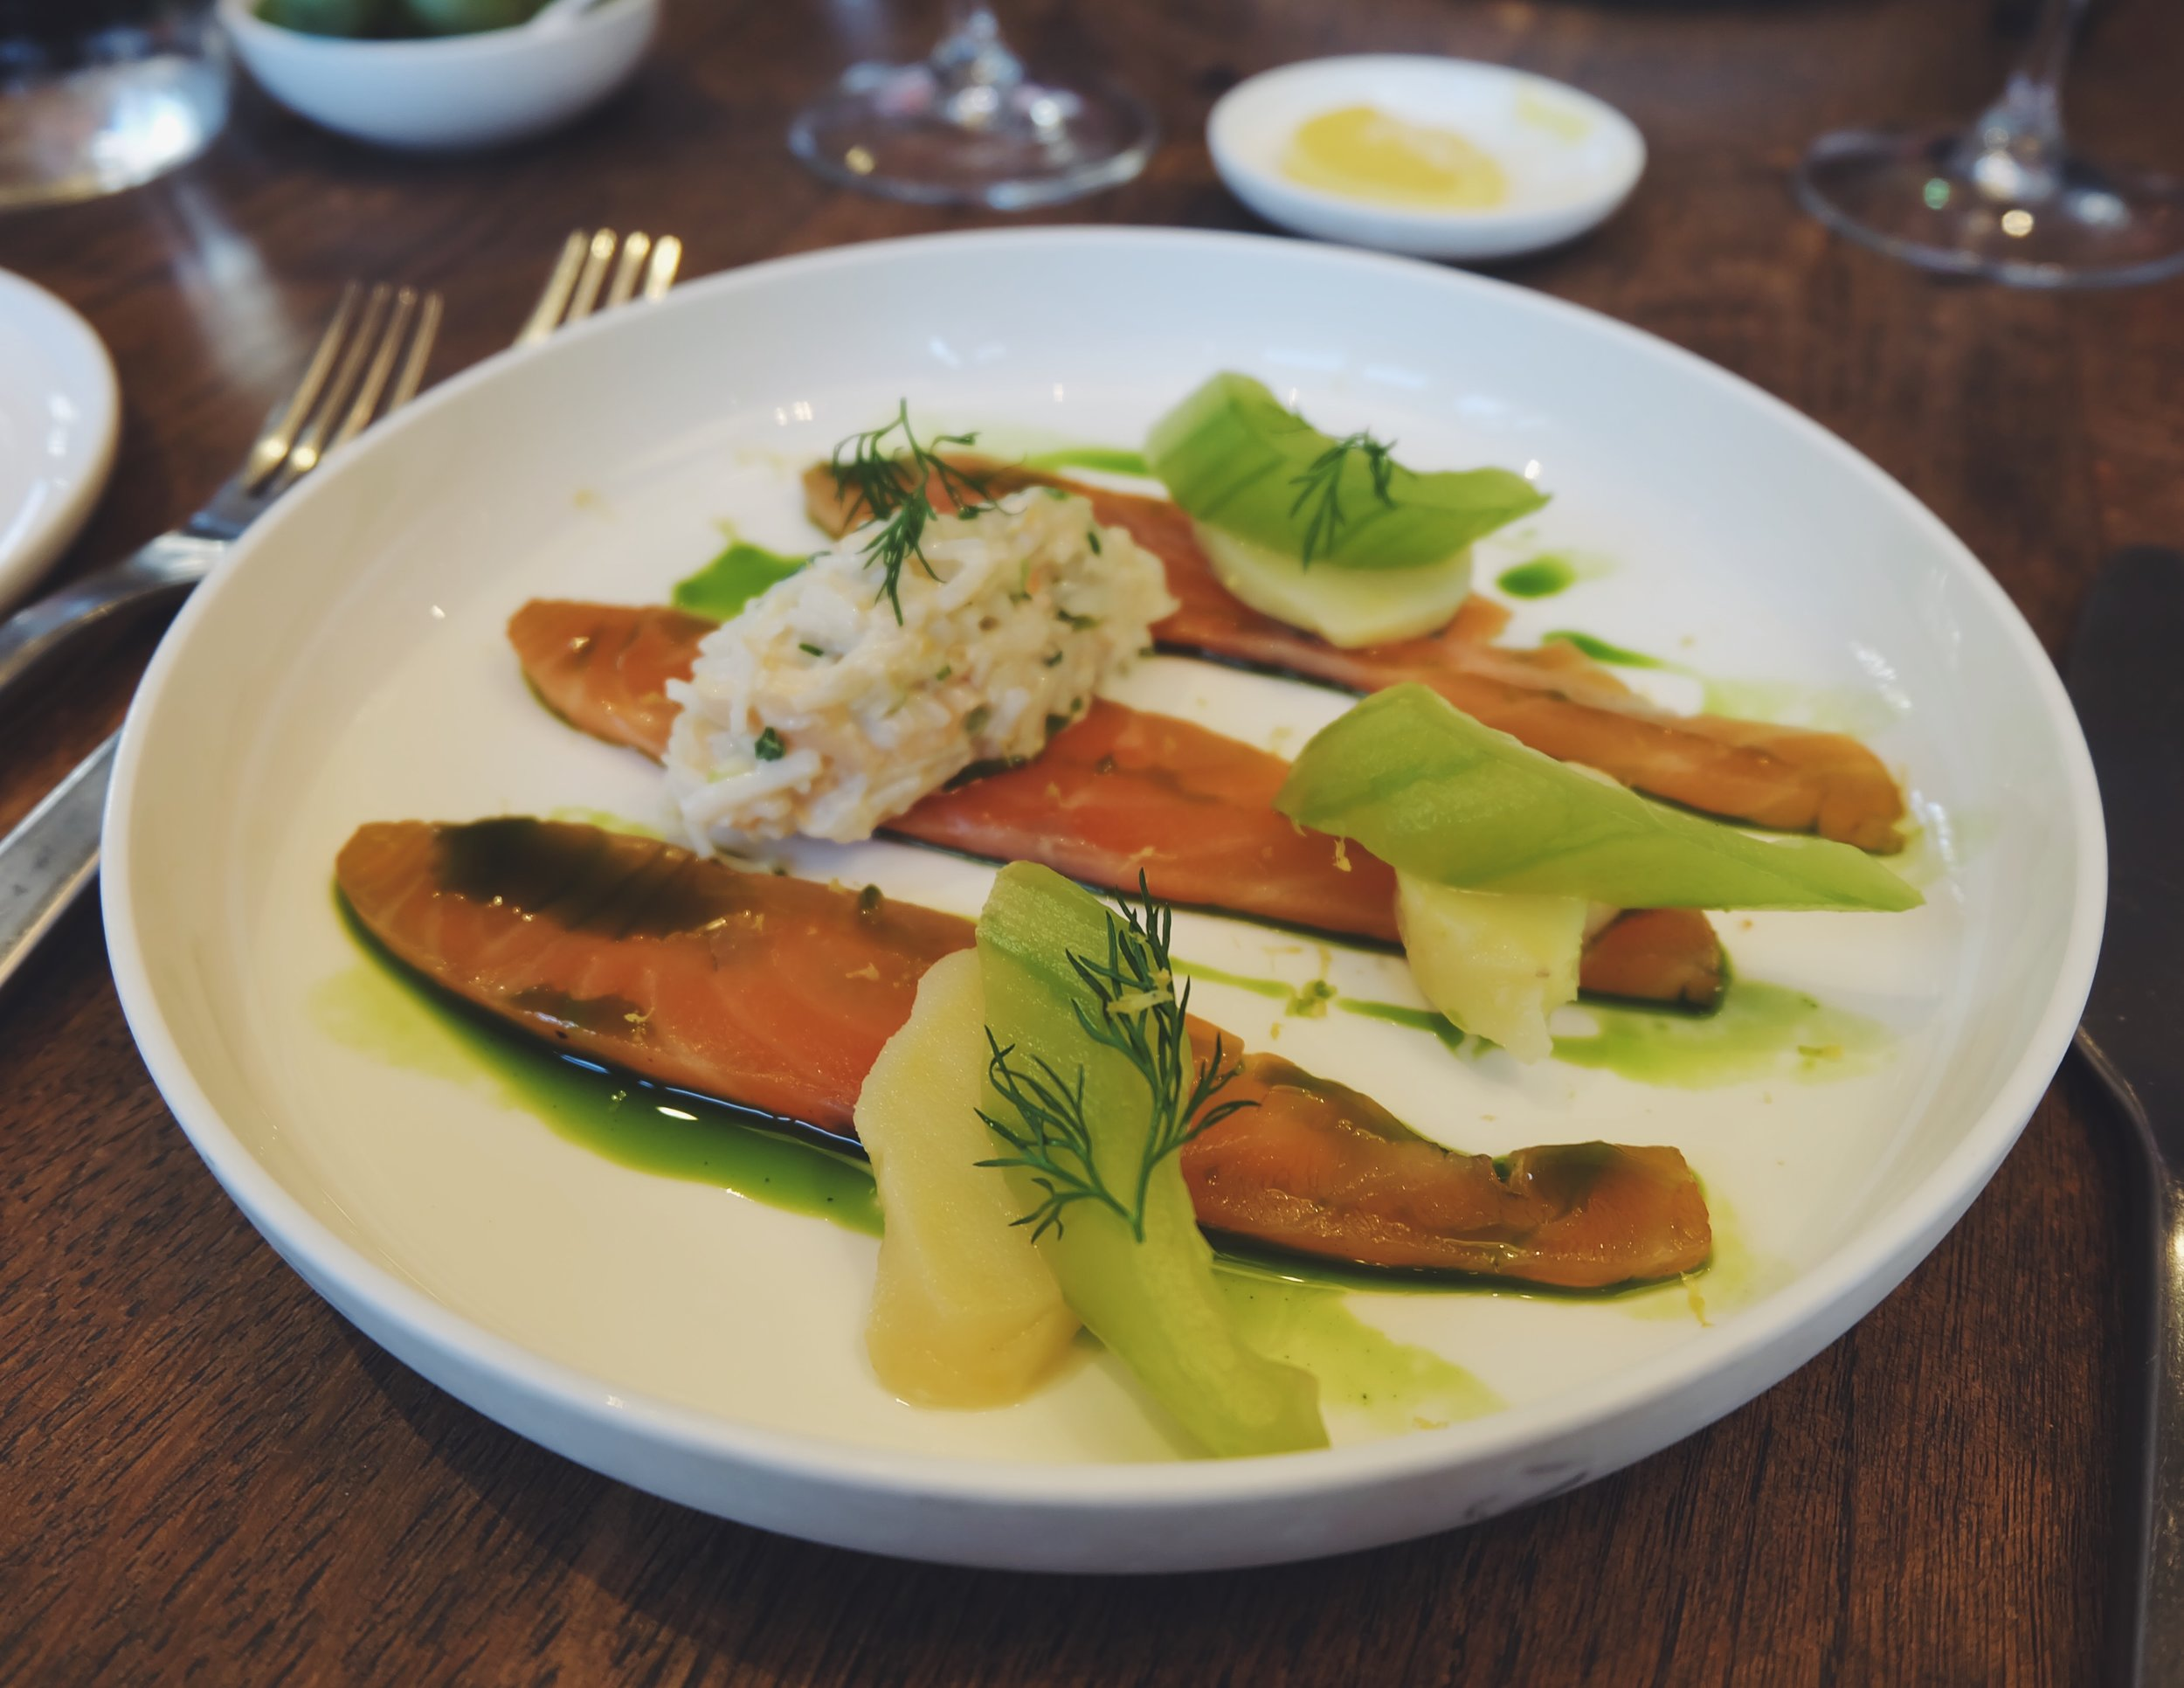 Clementine cured salmon with pickled cucumber, dressed crab and dill